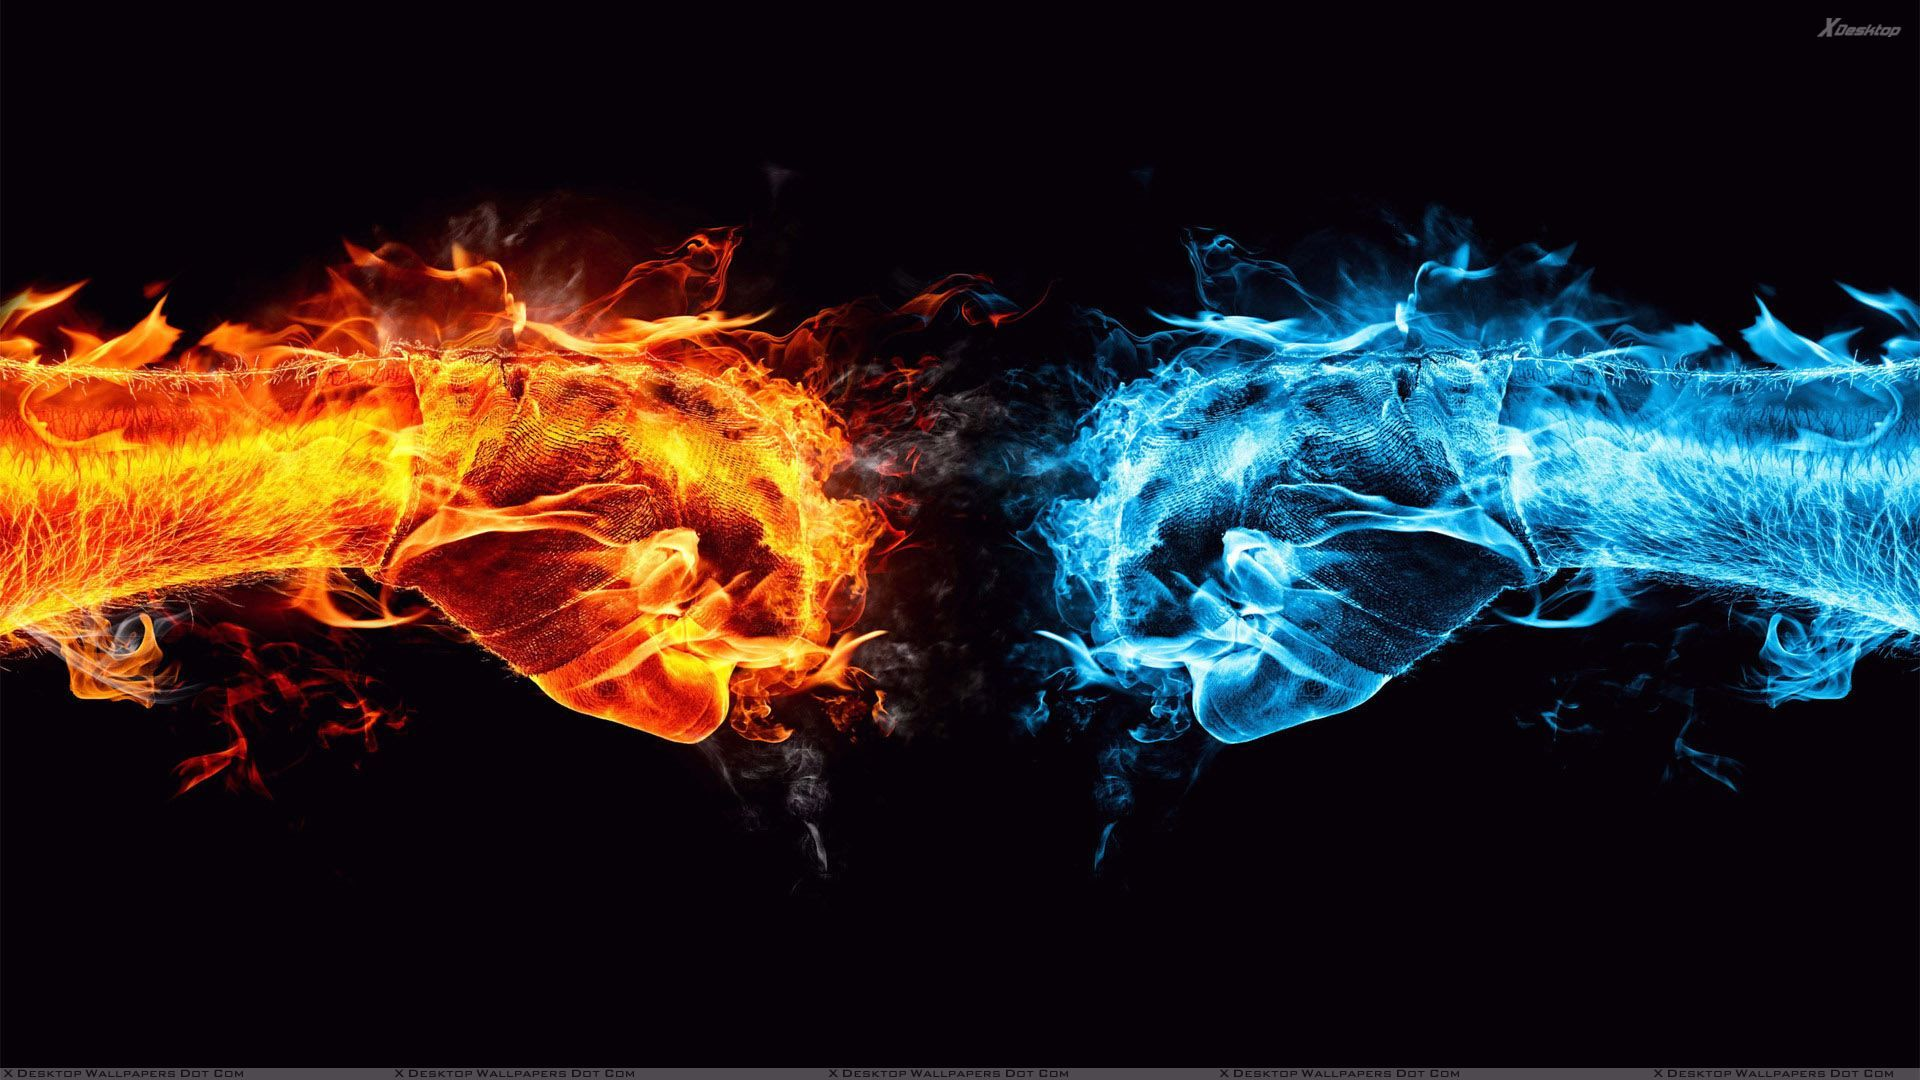 Subliminal Firefox Advertisement Fire Art Cool Desktop